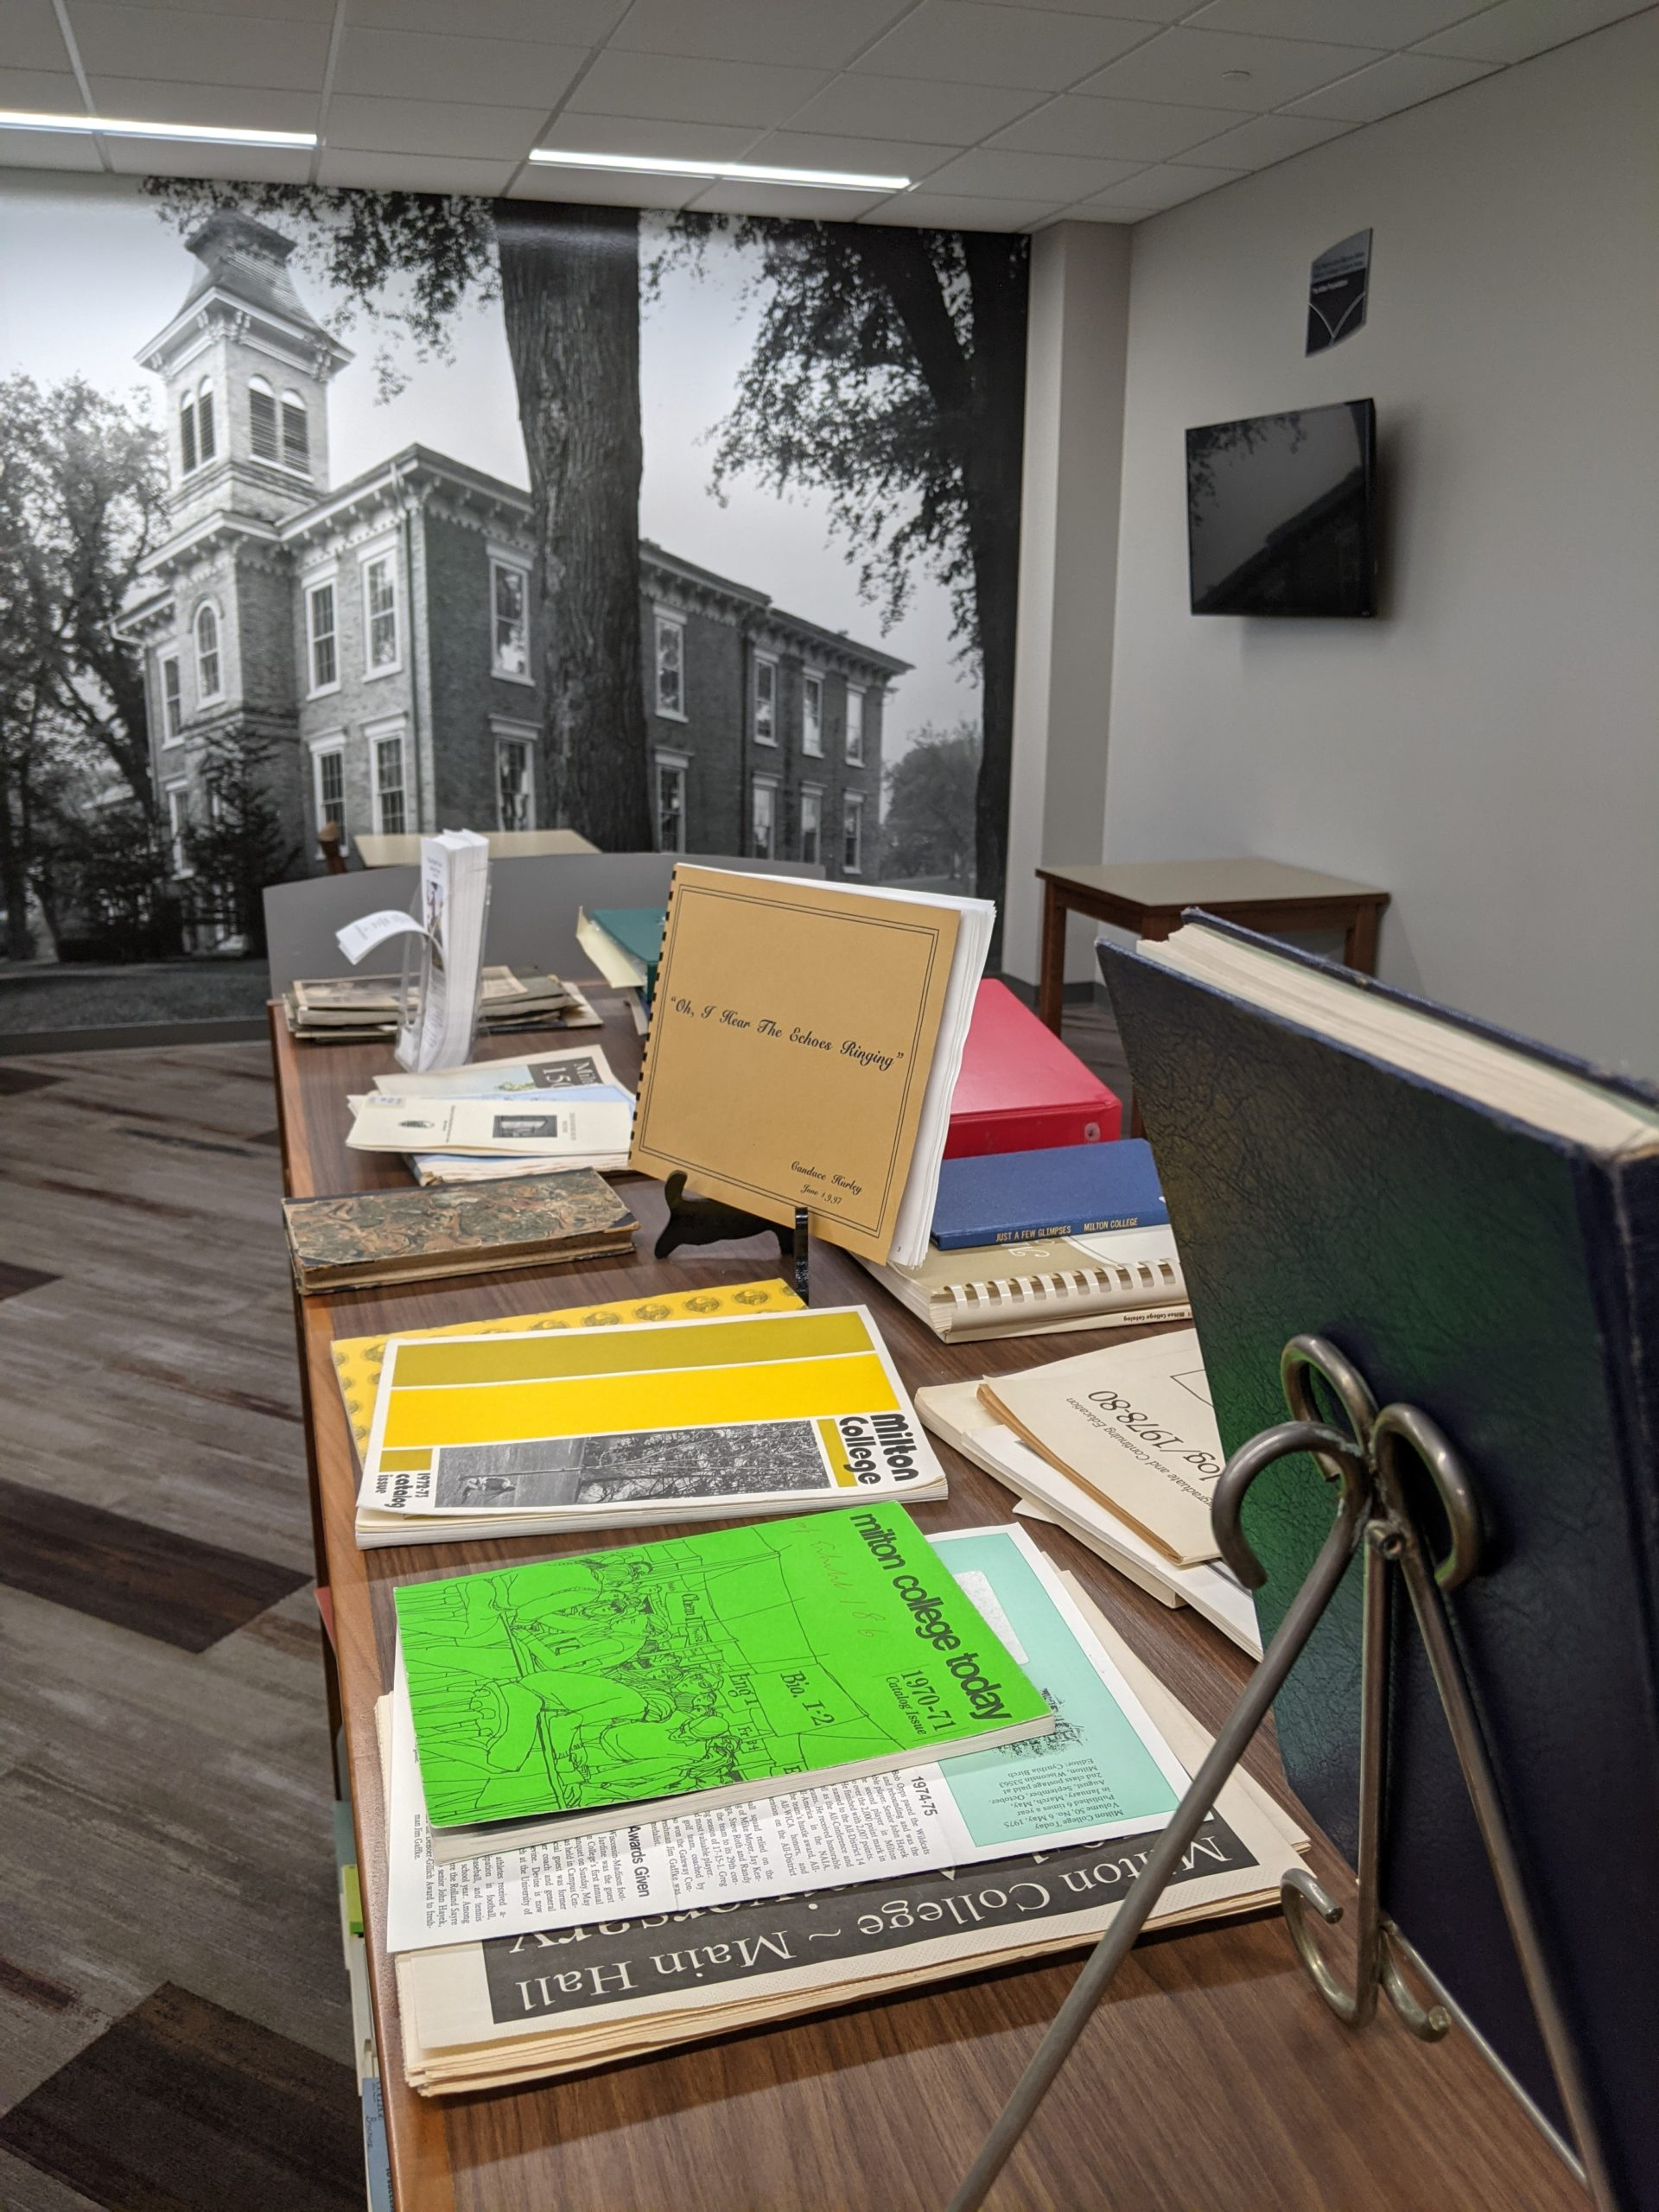 Image of various Milton College paraphenalia displayed atop a book shelf with a mural image of an old campus building.